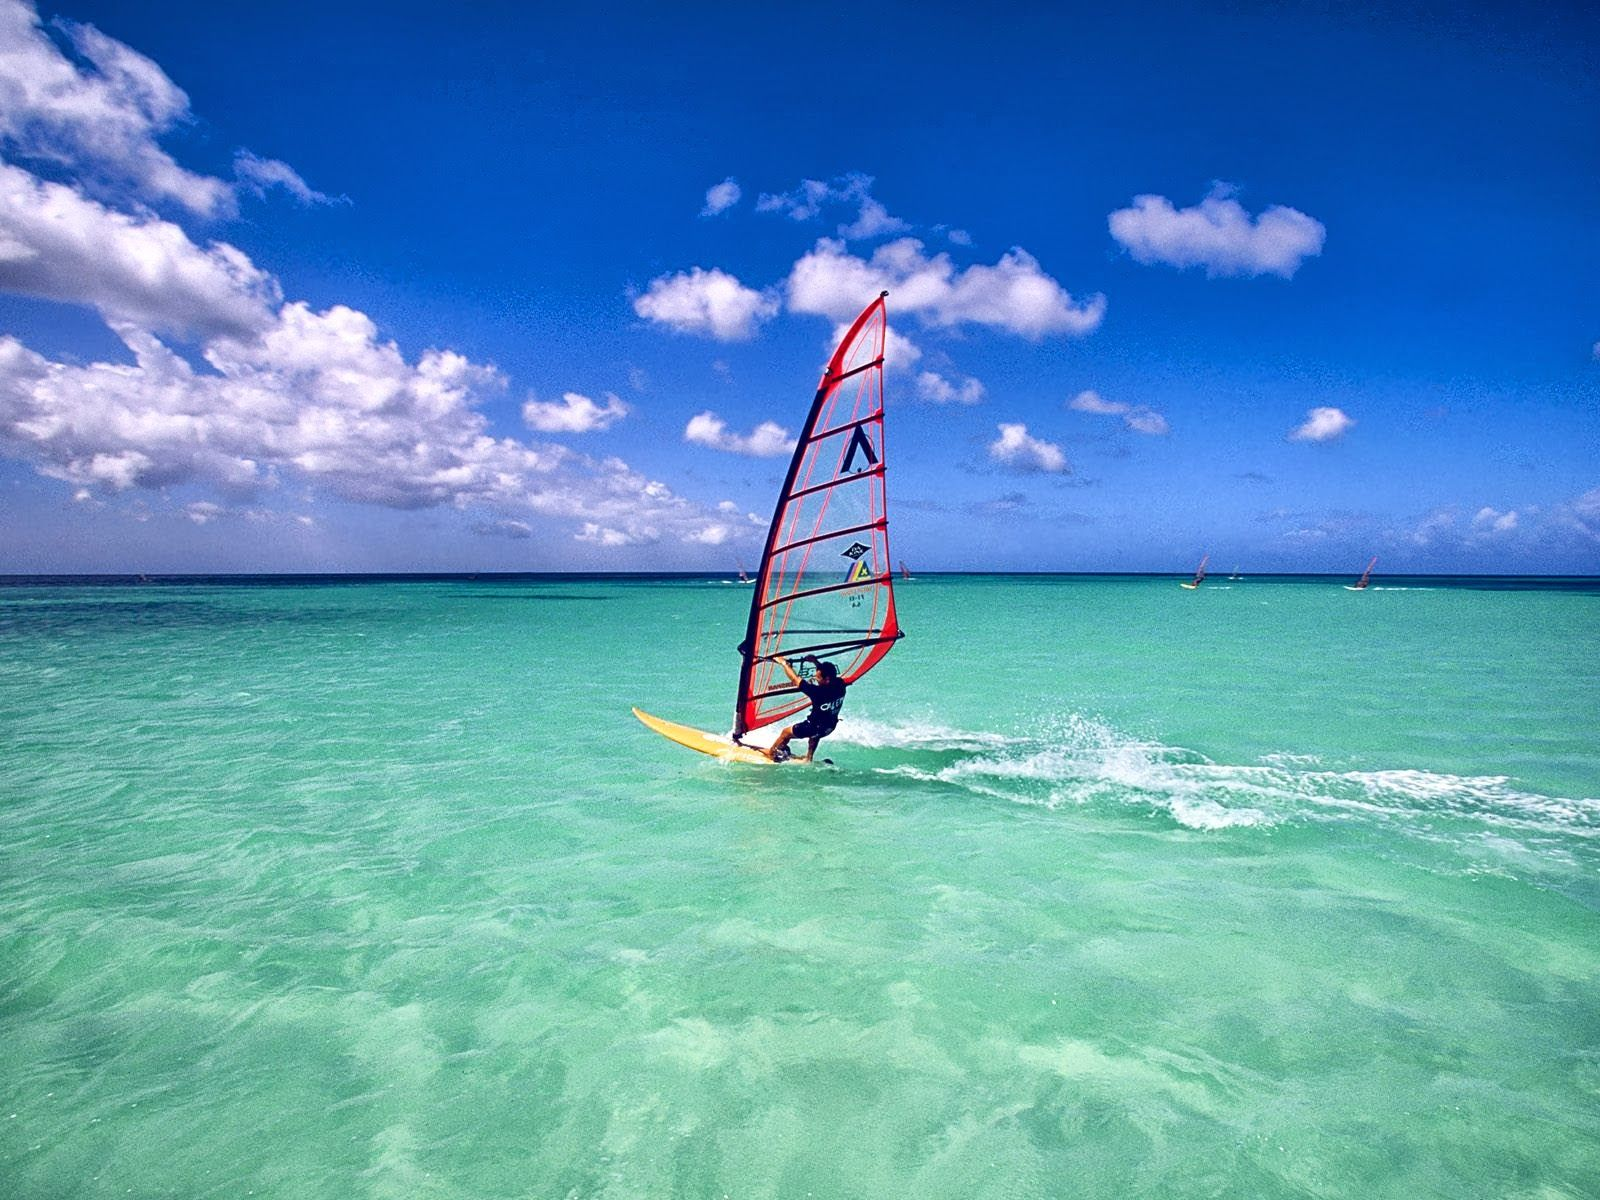 water sports Google Search Surfing, Windsurfing, Kite